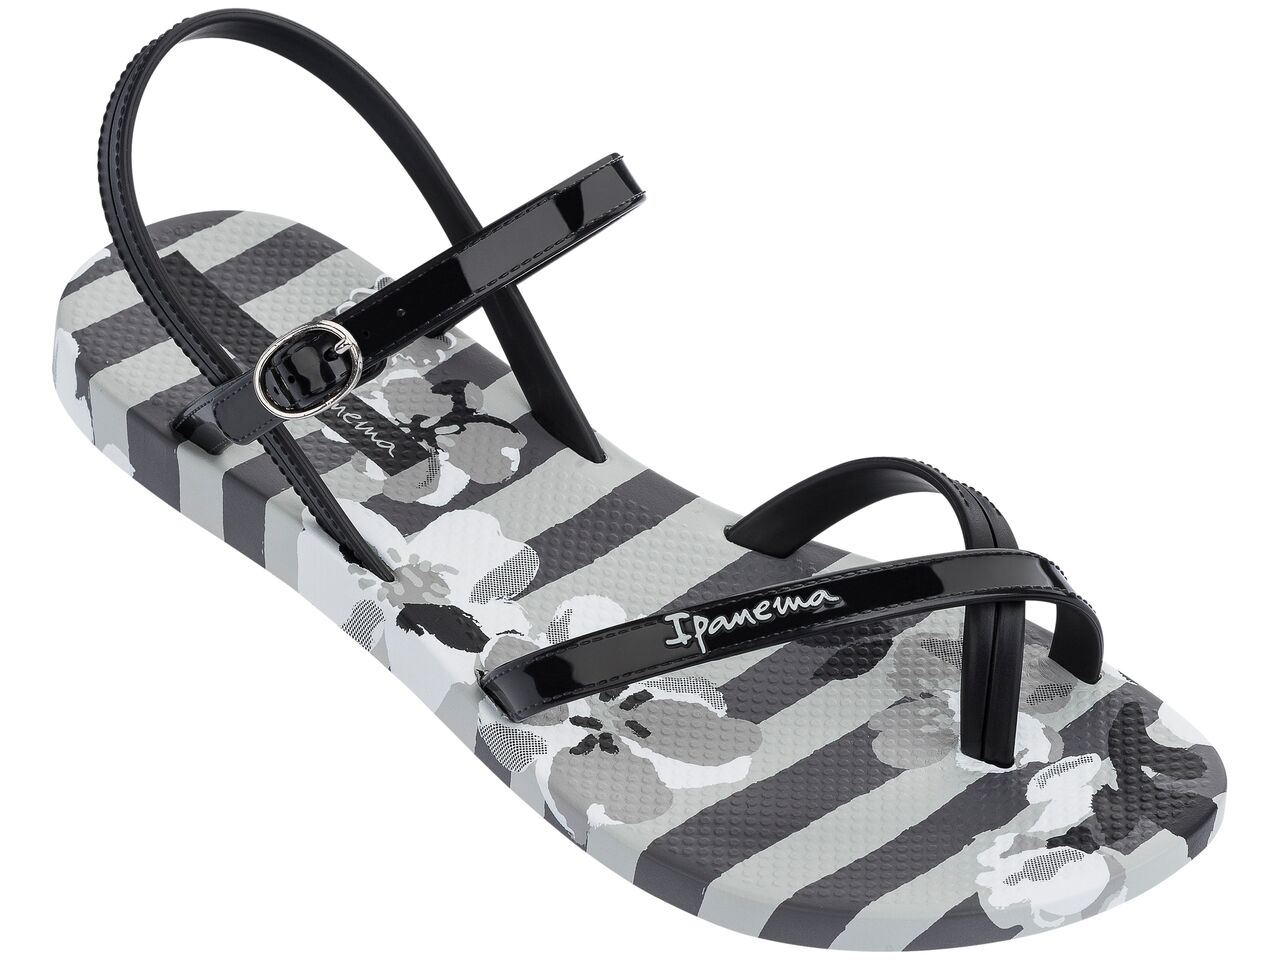 Ipanema flip flops end of line clearance sale Free UK Shipping